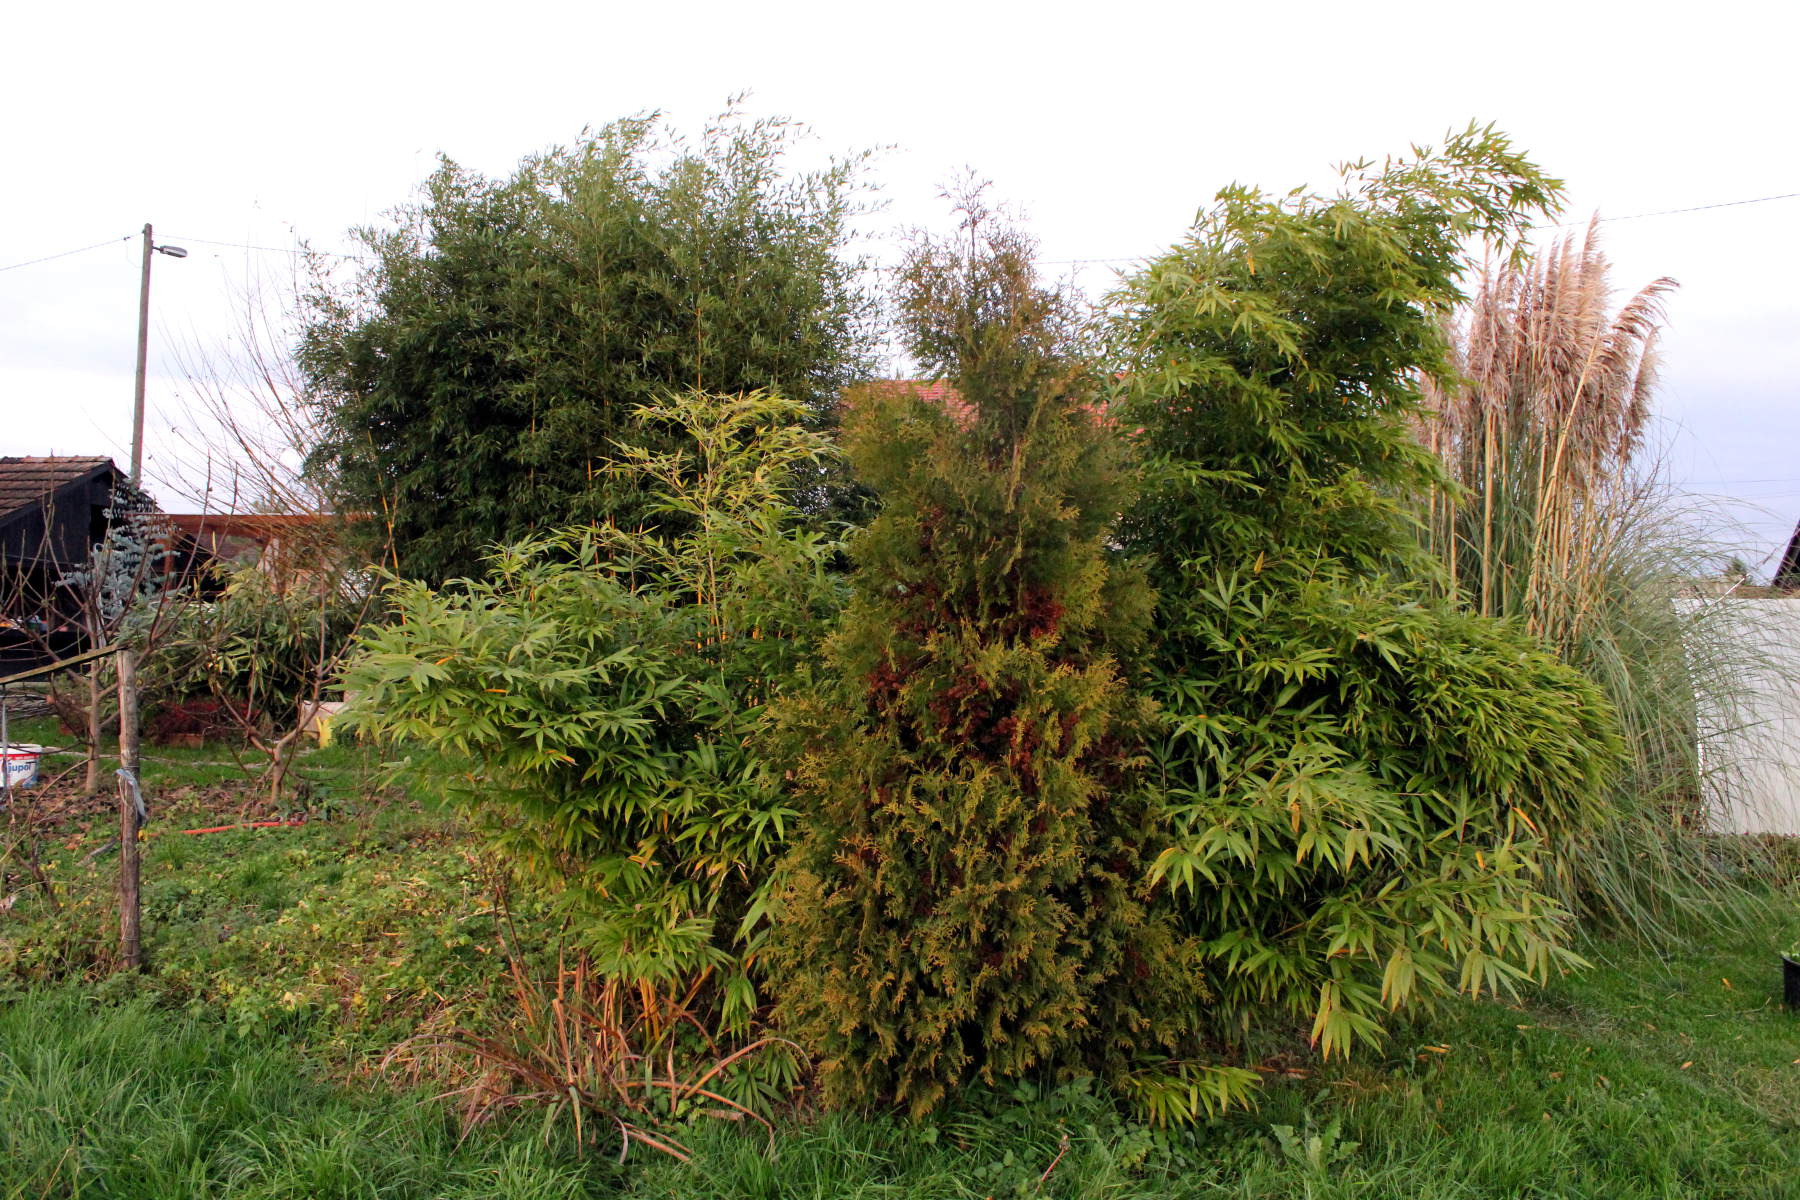 phyllostachys pubescens 'Moso' fall 2016